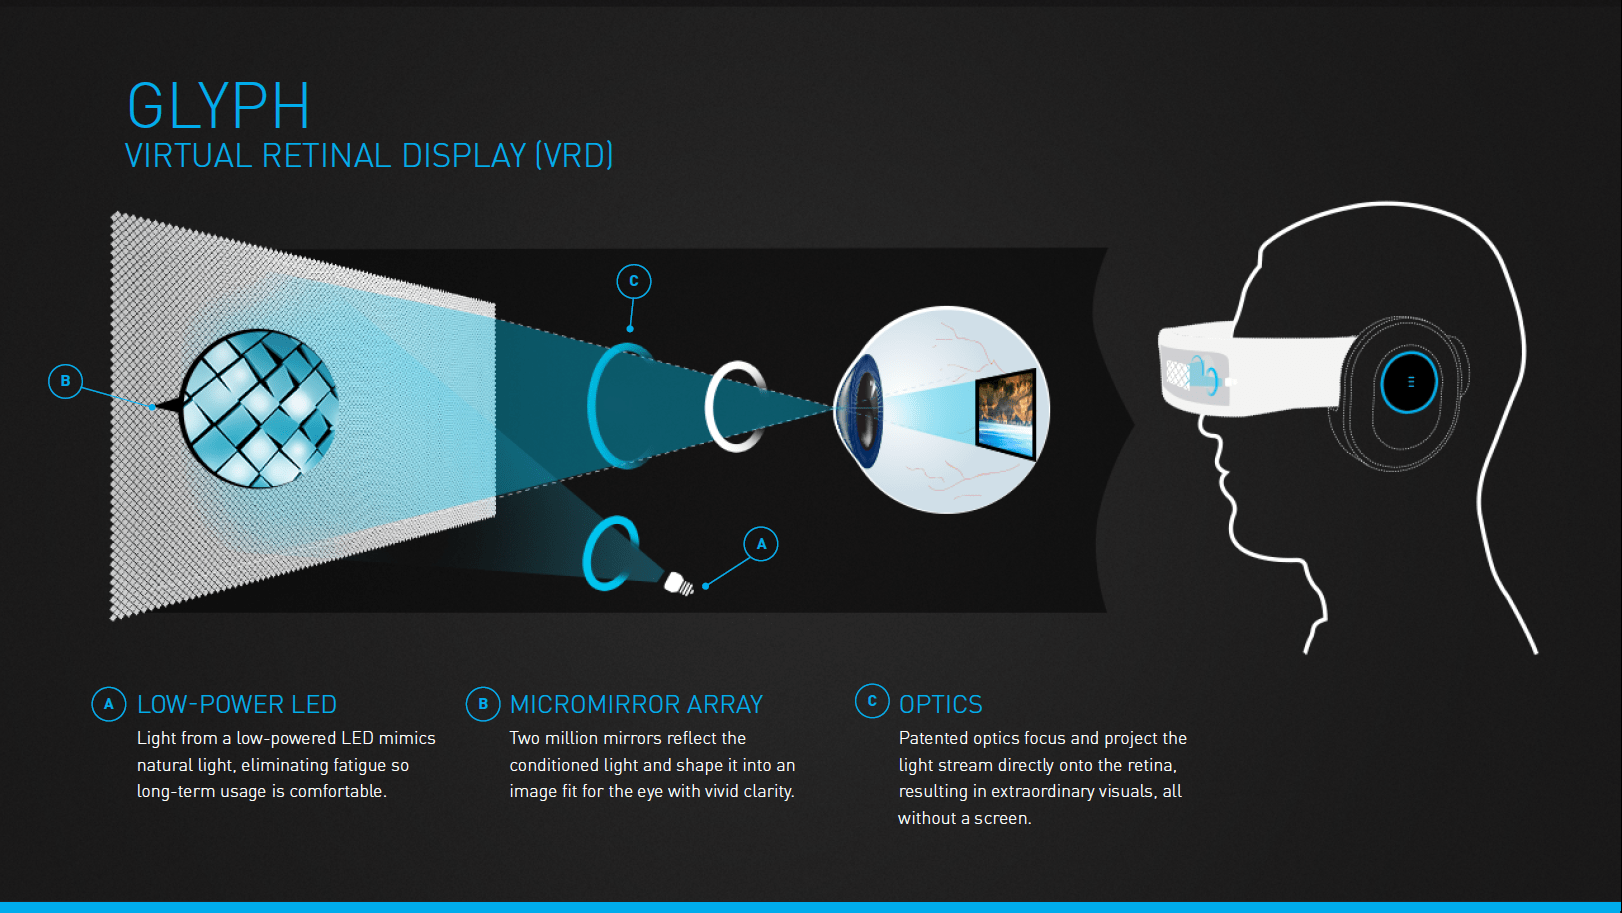 http://i0.wp.com/www.roadtovr.com/wp-content/uploads/2014/01/Avegant-Virtual-Retinal-Display-Infographic.png